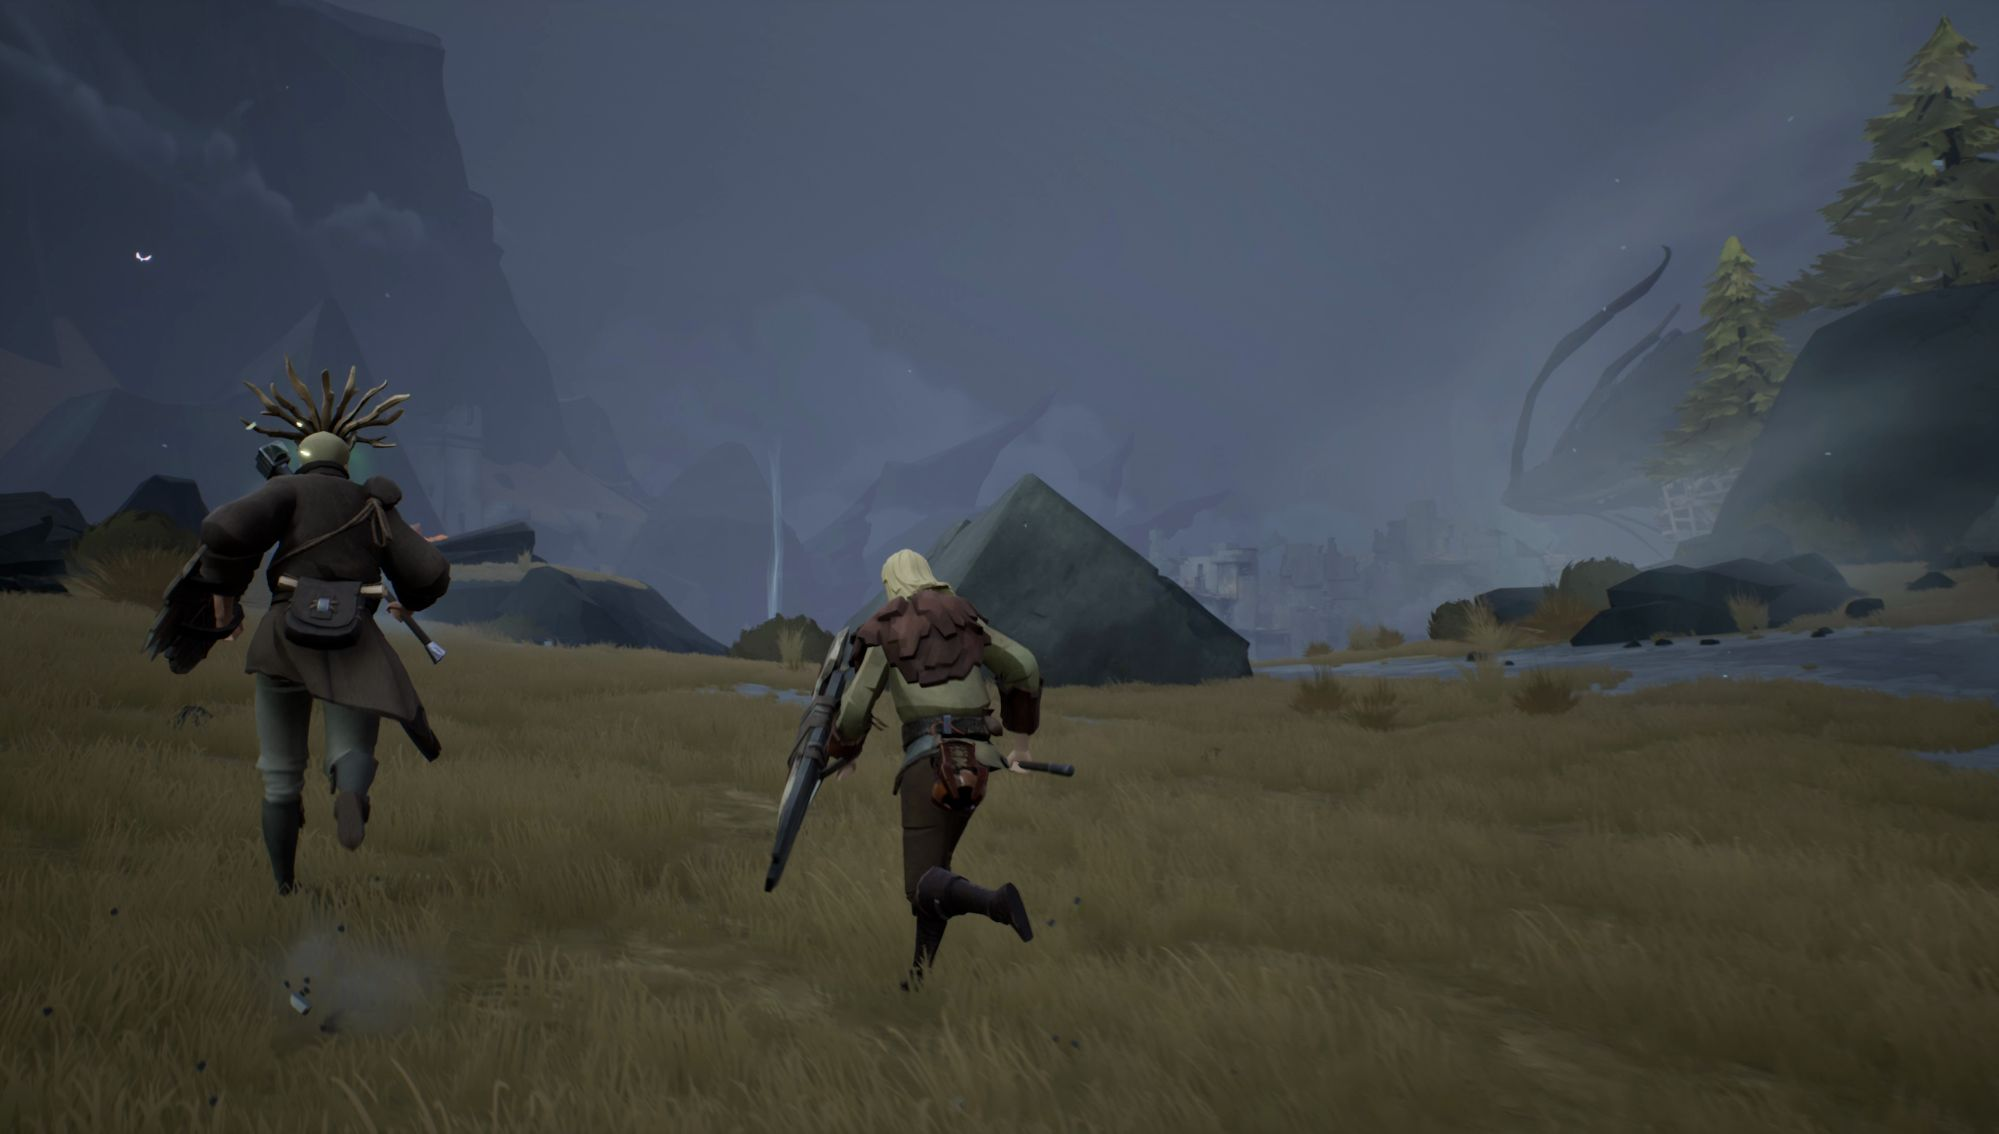 Ashen Download Free PC Game Full Version